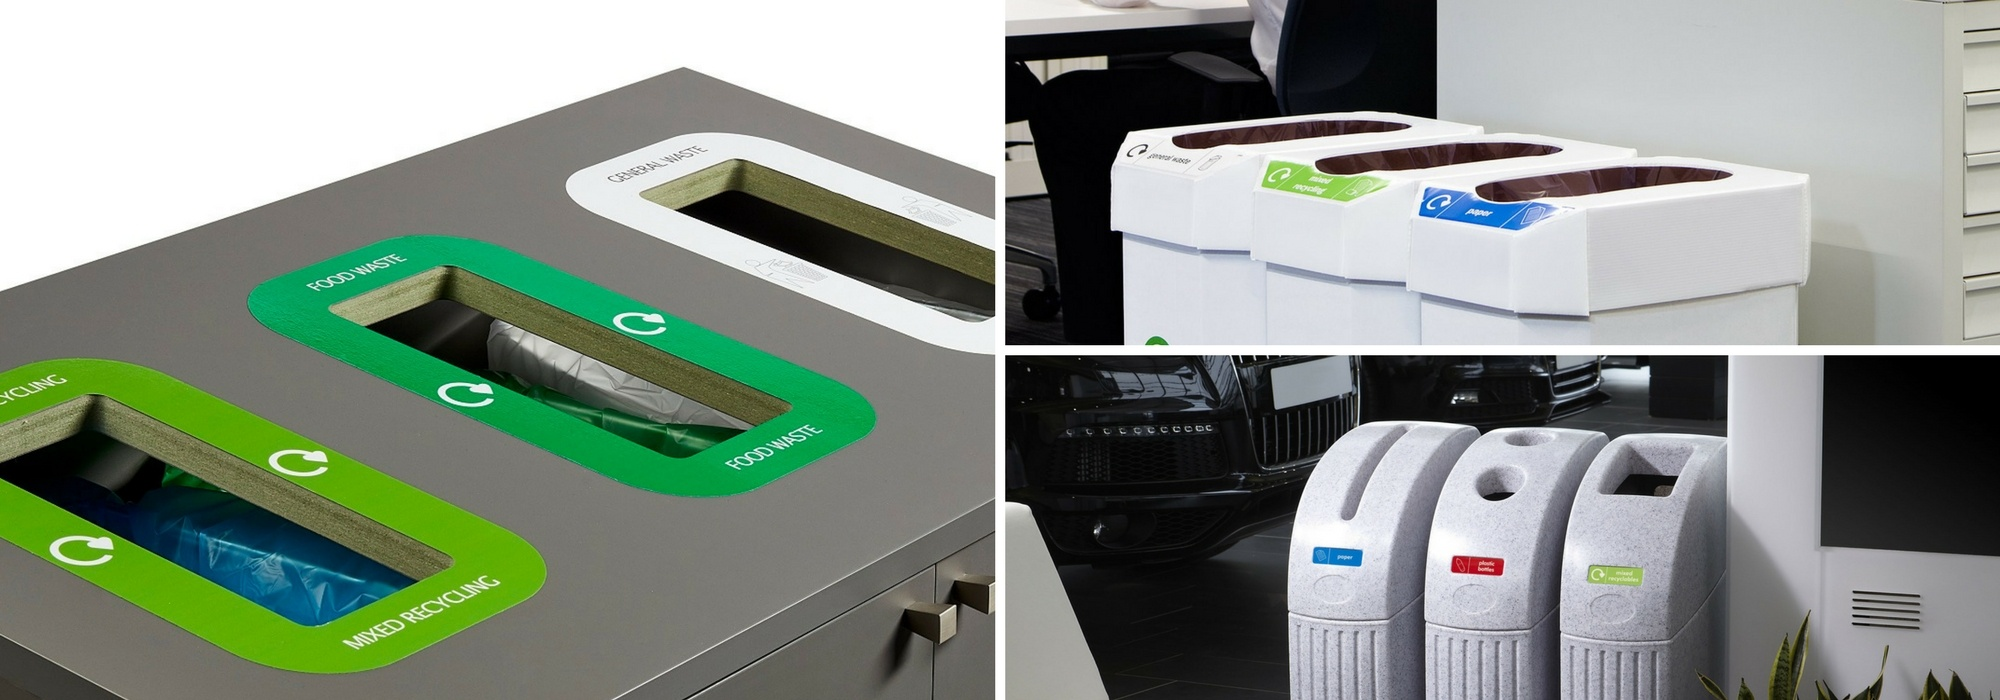 Off the shelf recycling stations and solutions